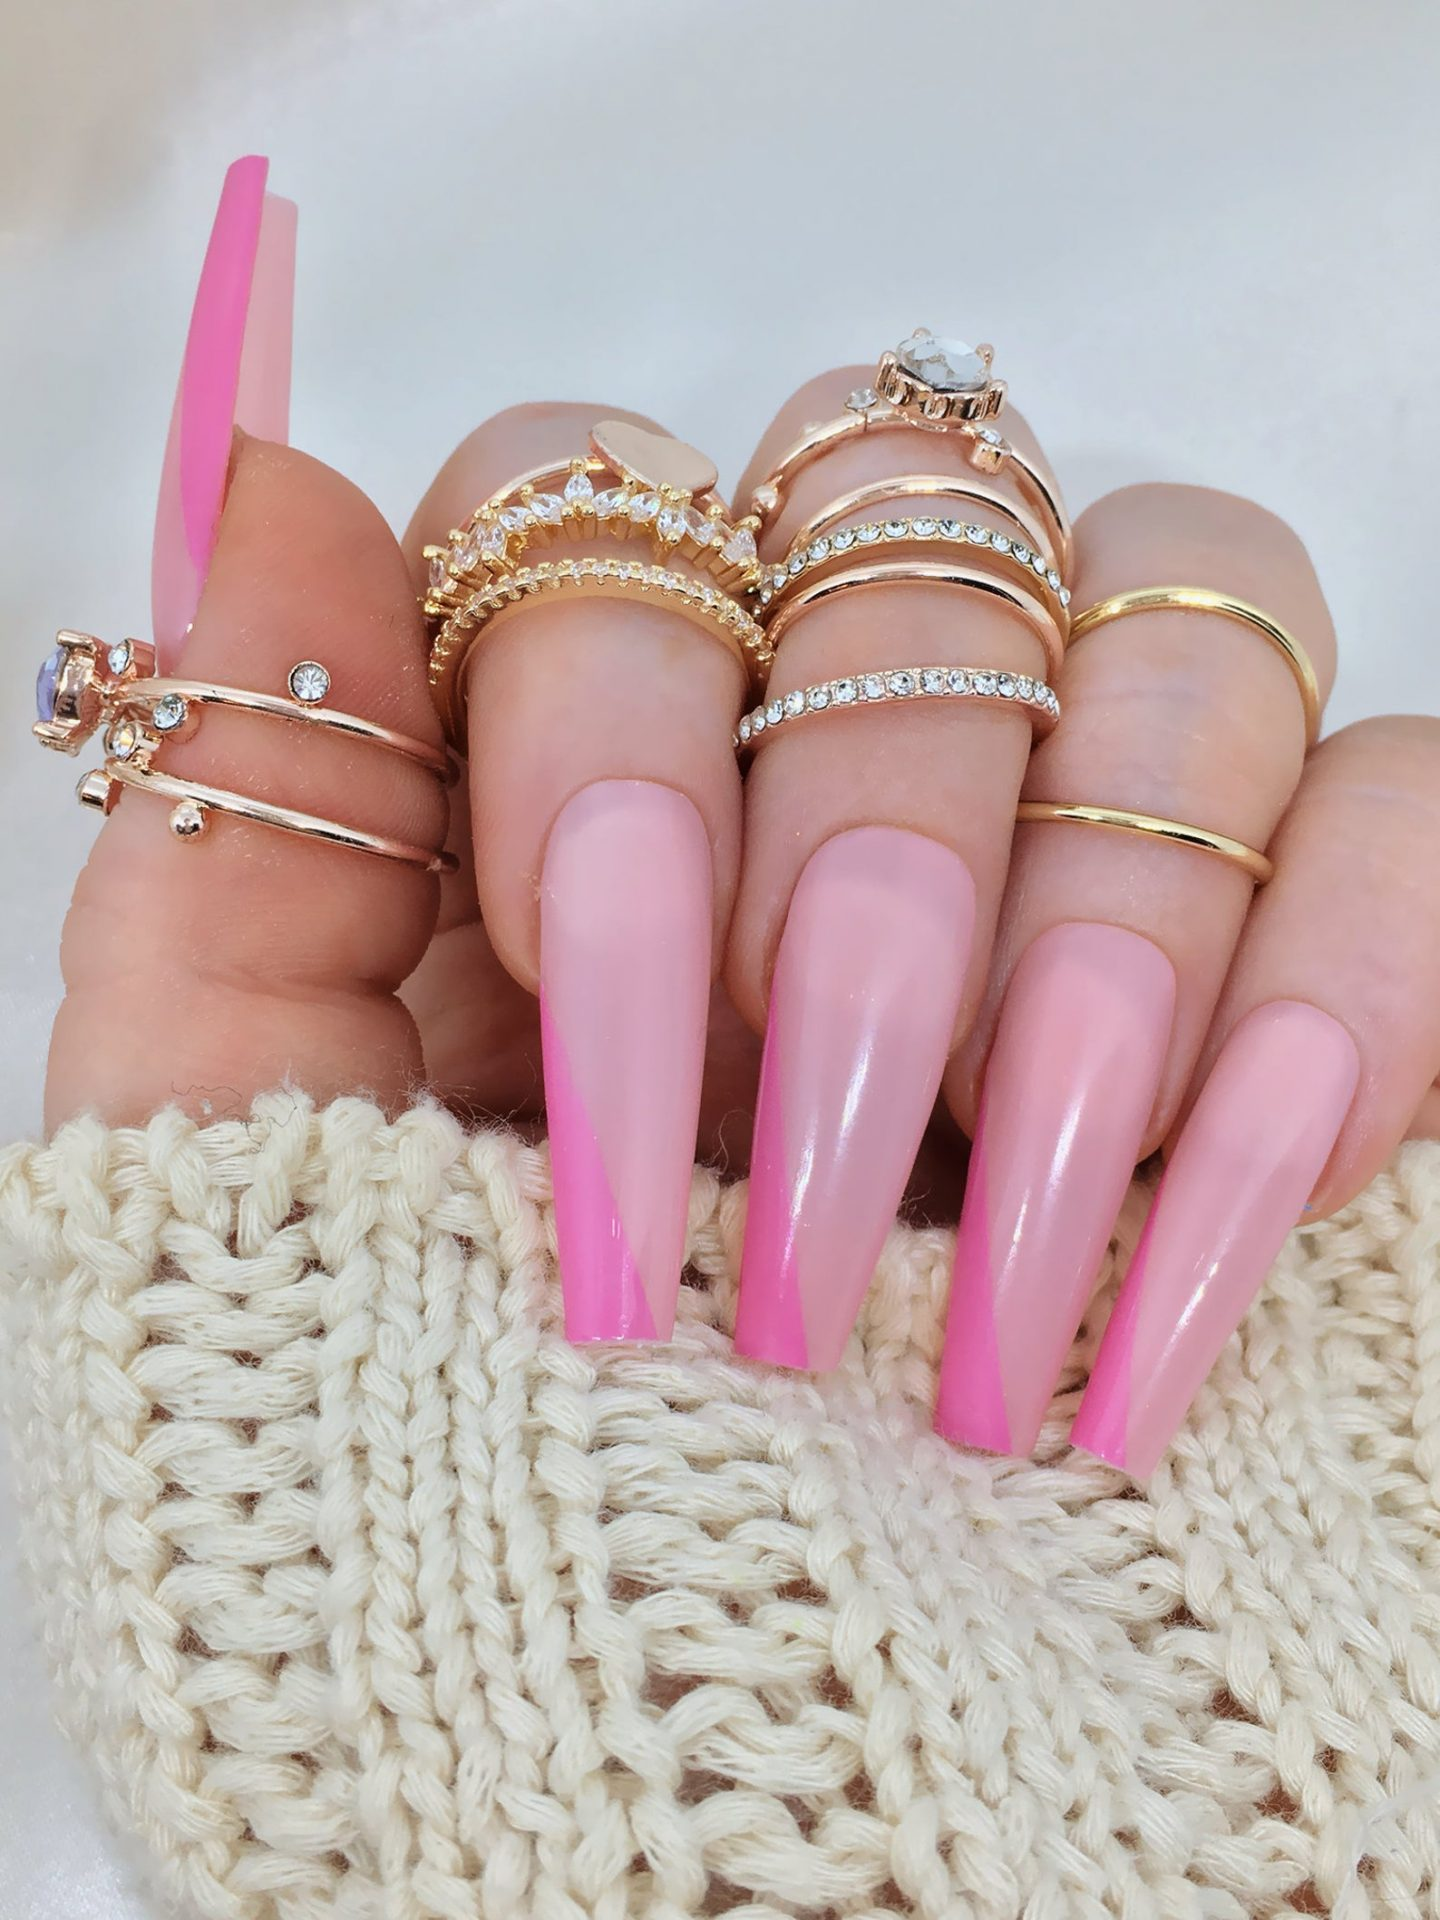 Hot pink French tip coffin nails